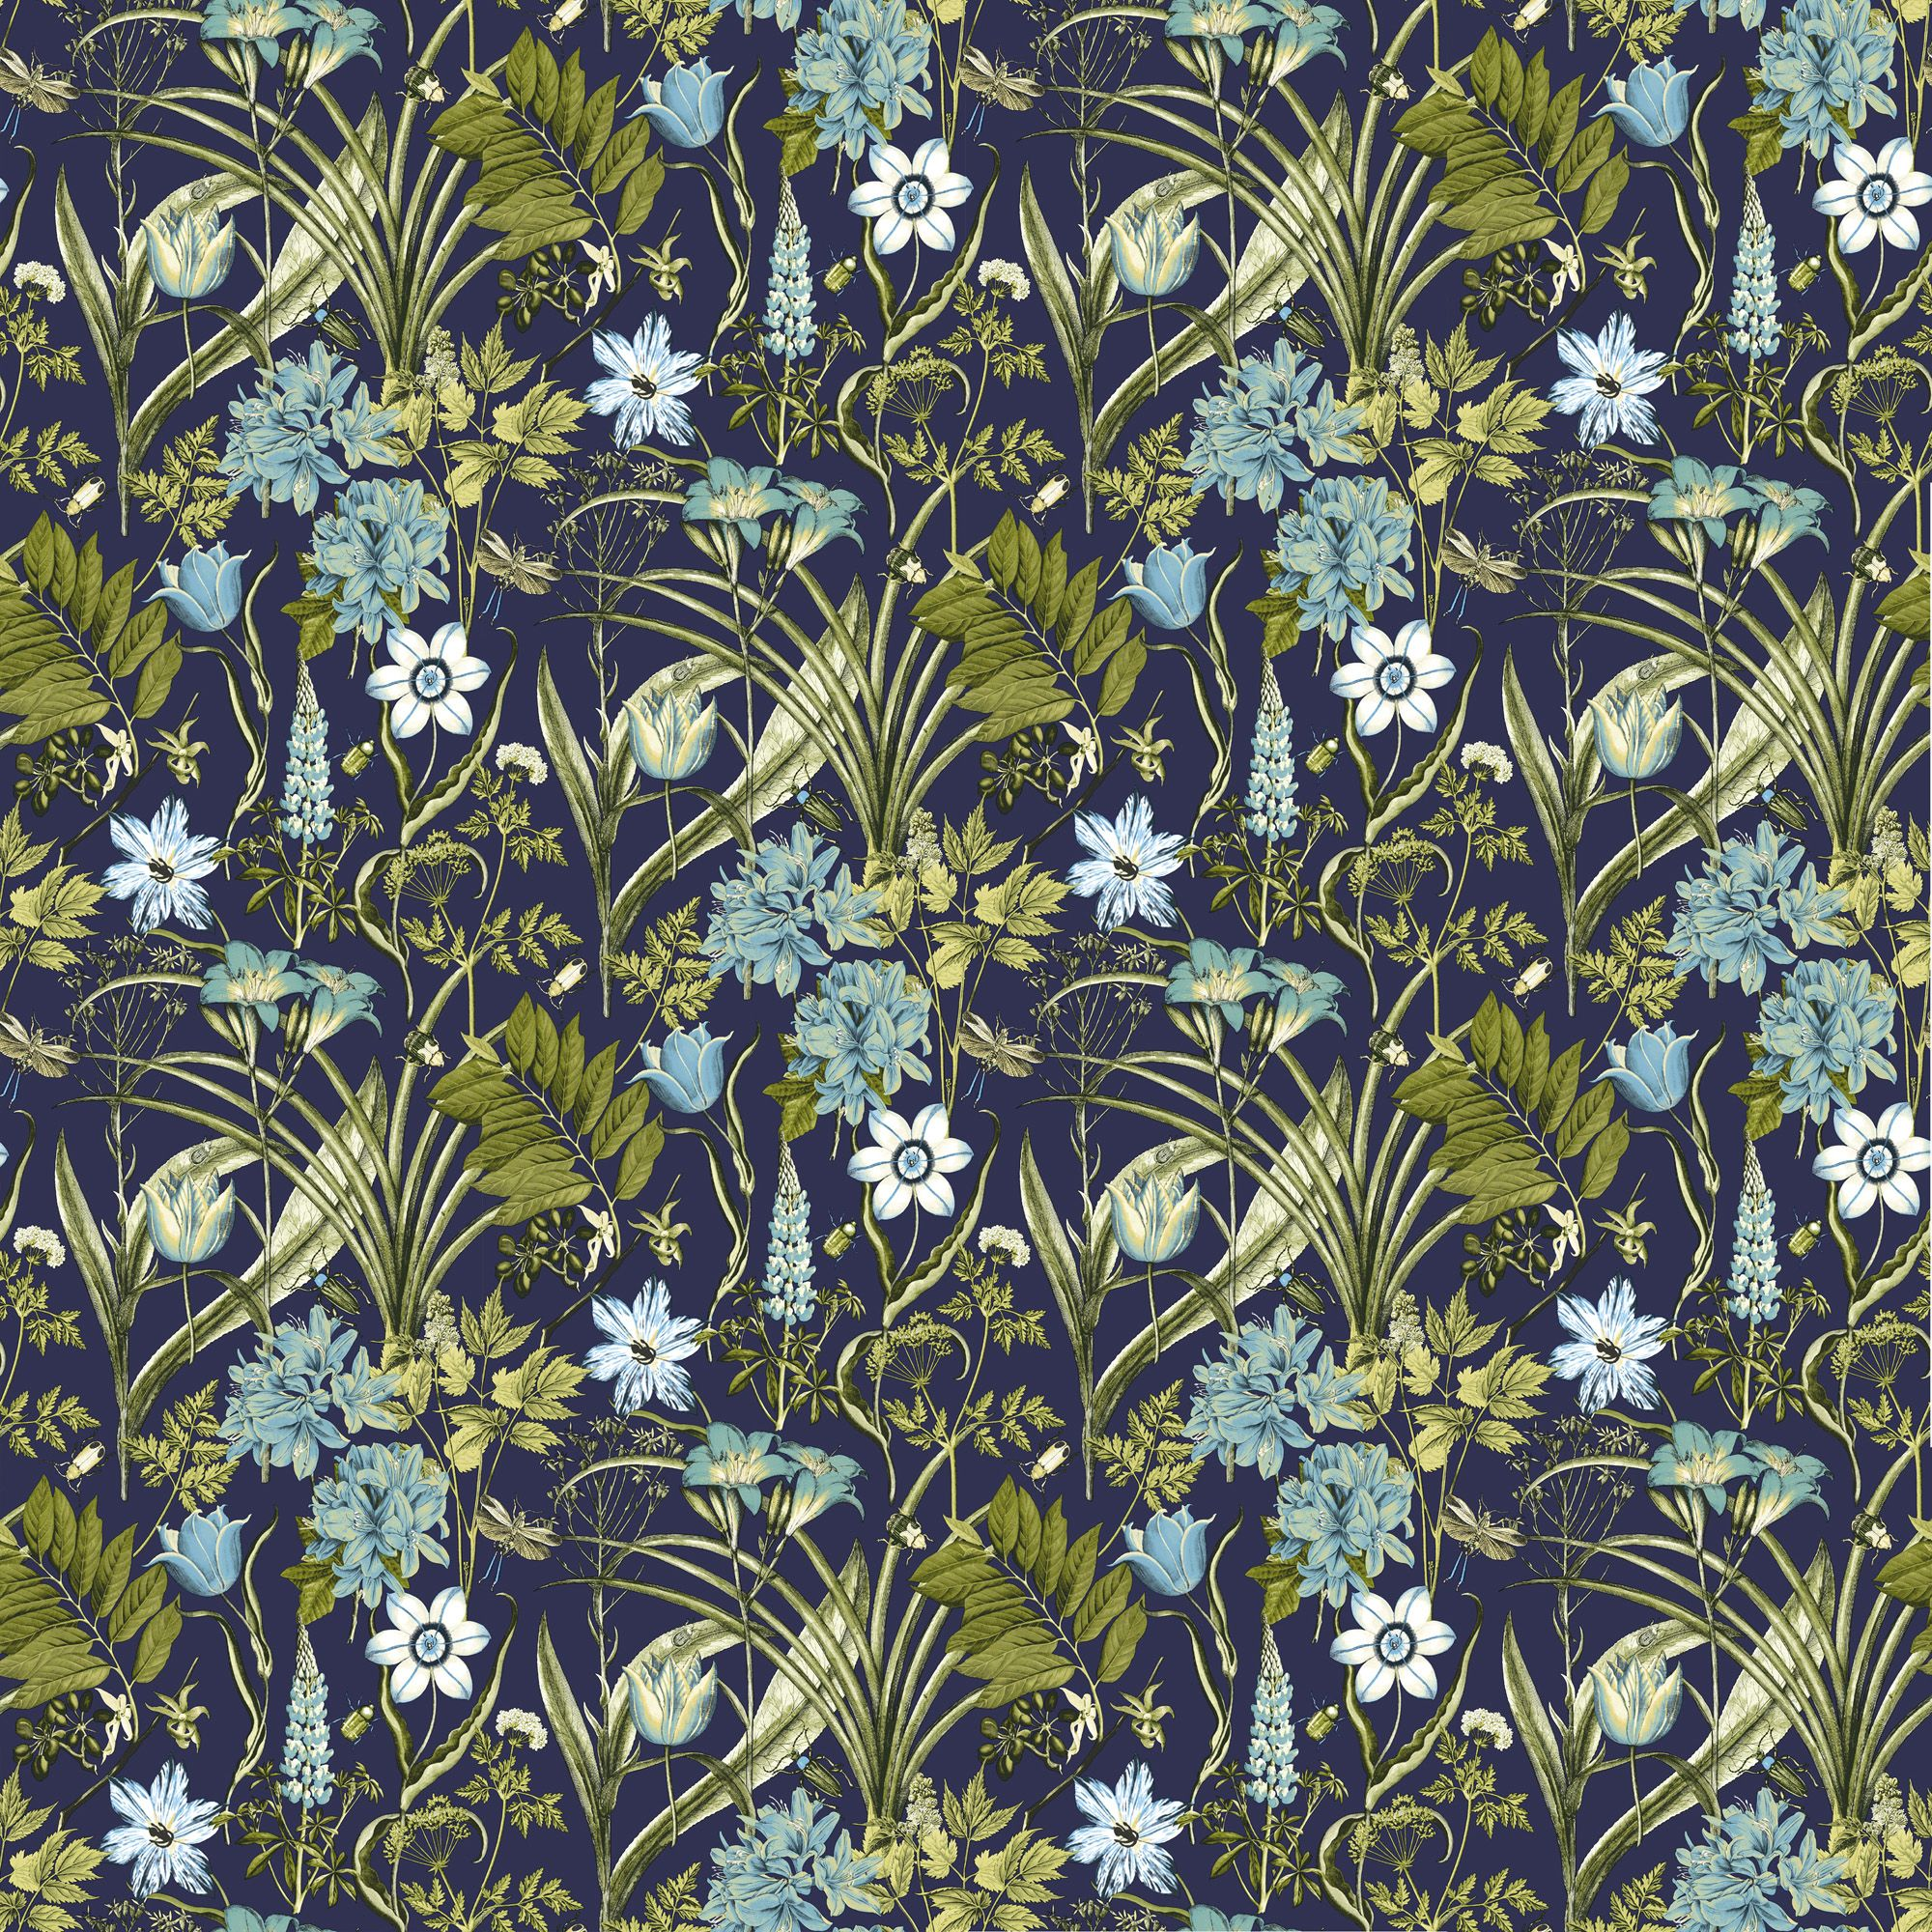 Ideco Home Flora amp Fauna Blue Green Foral Wallpaper